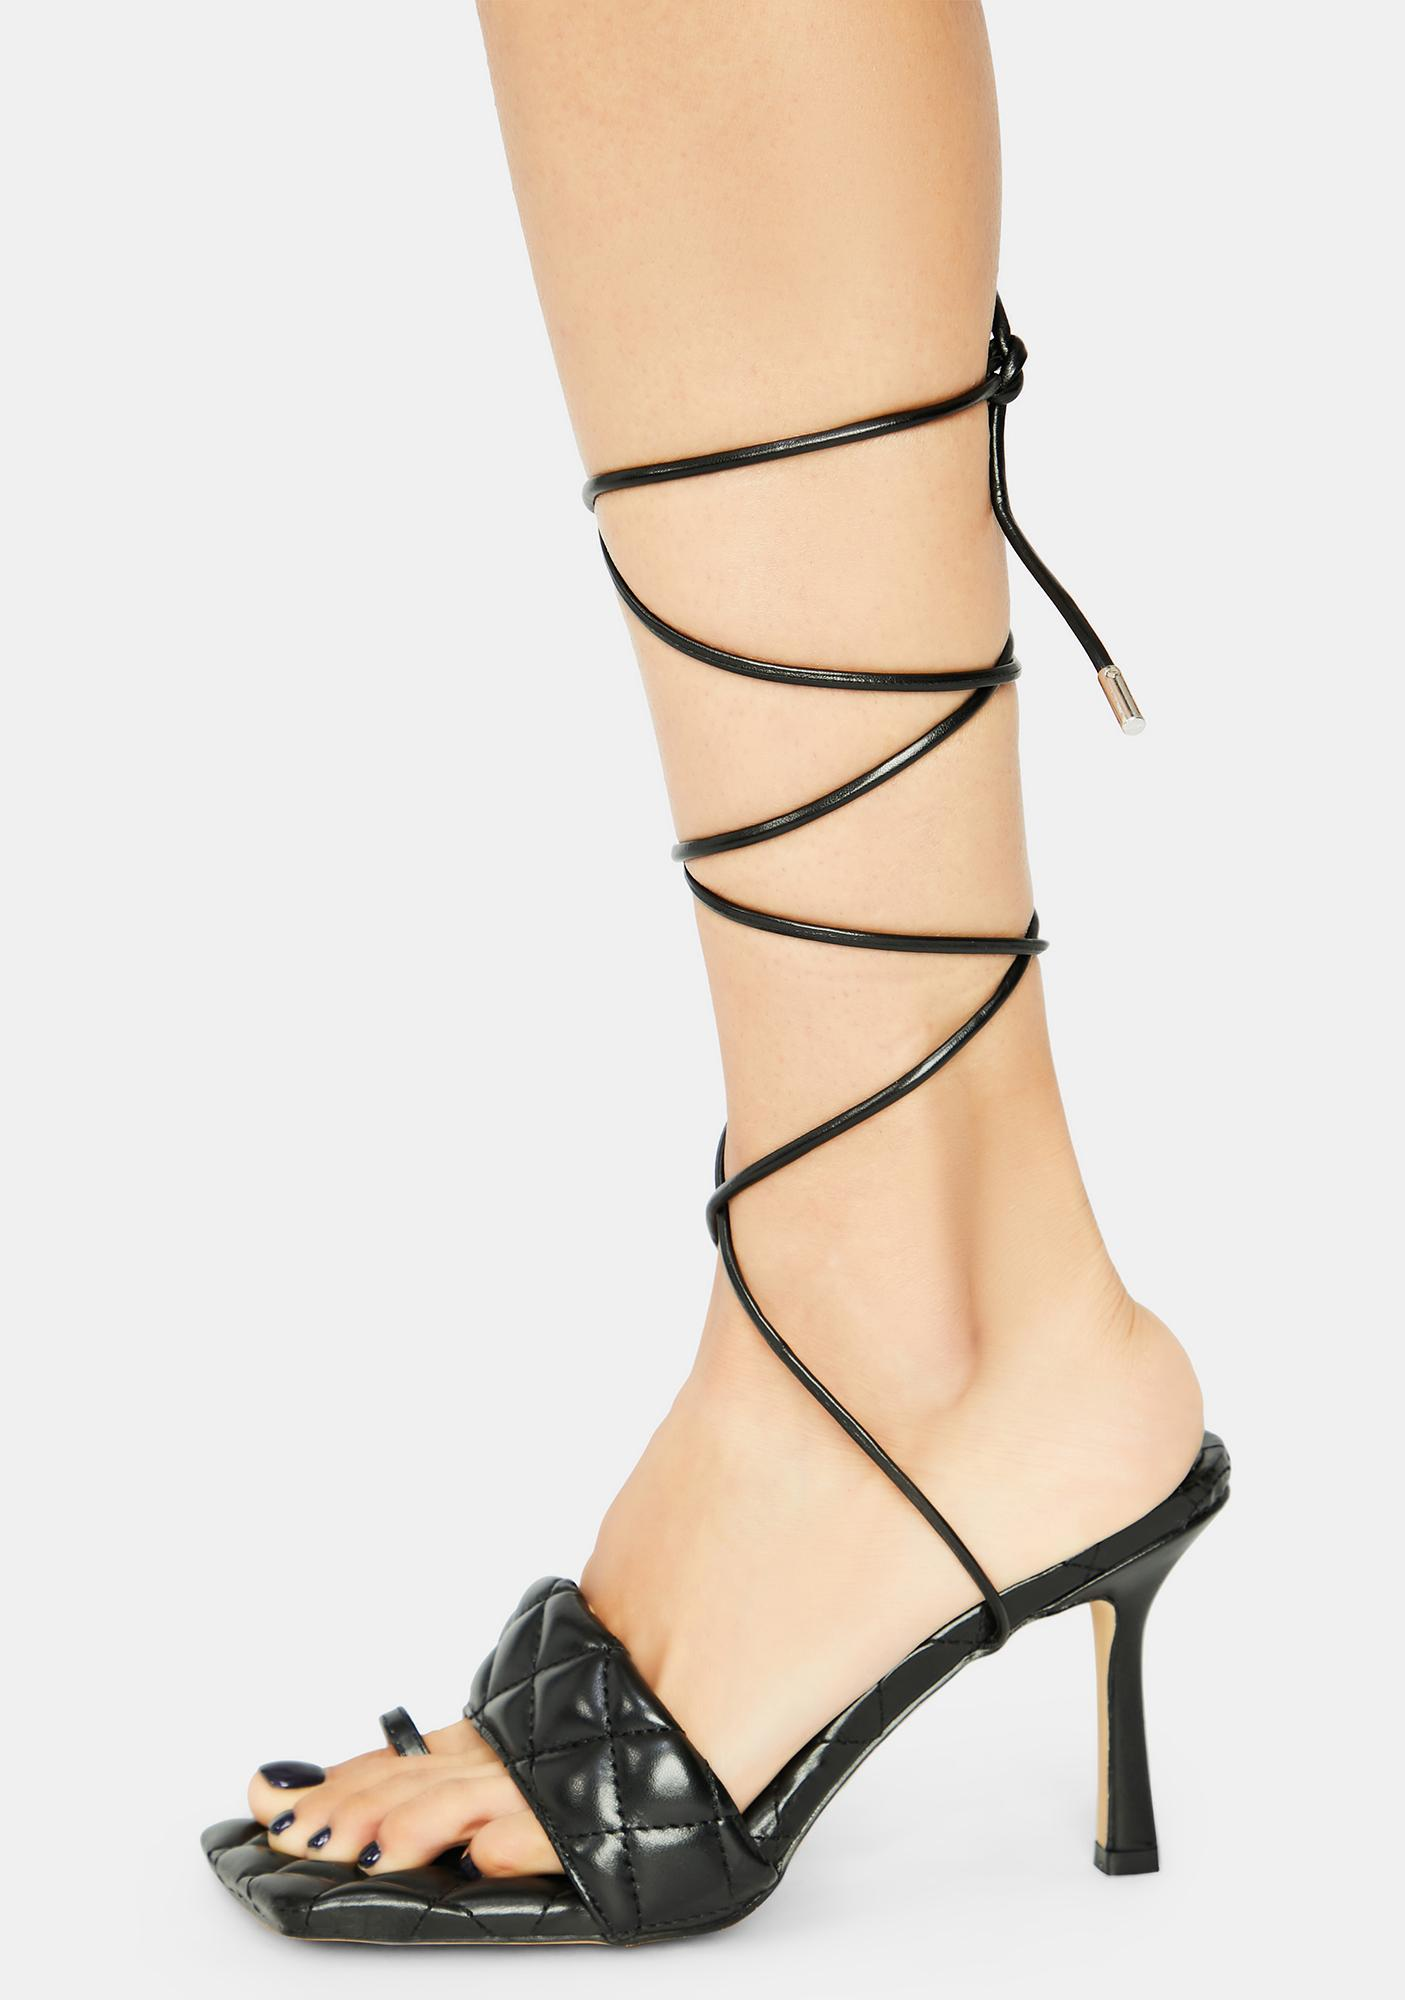 Dark Risk It All Quilted Lace Up Kitten Heels